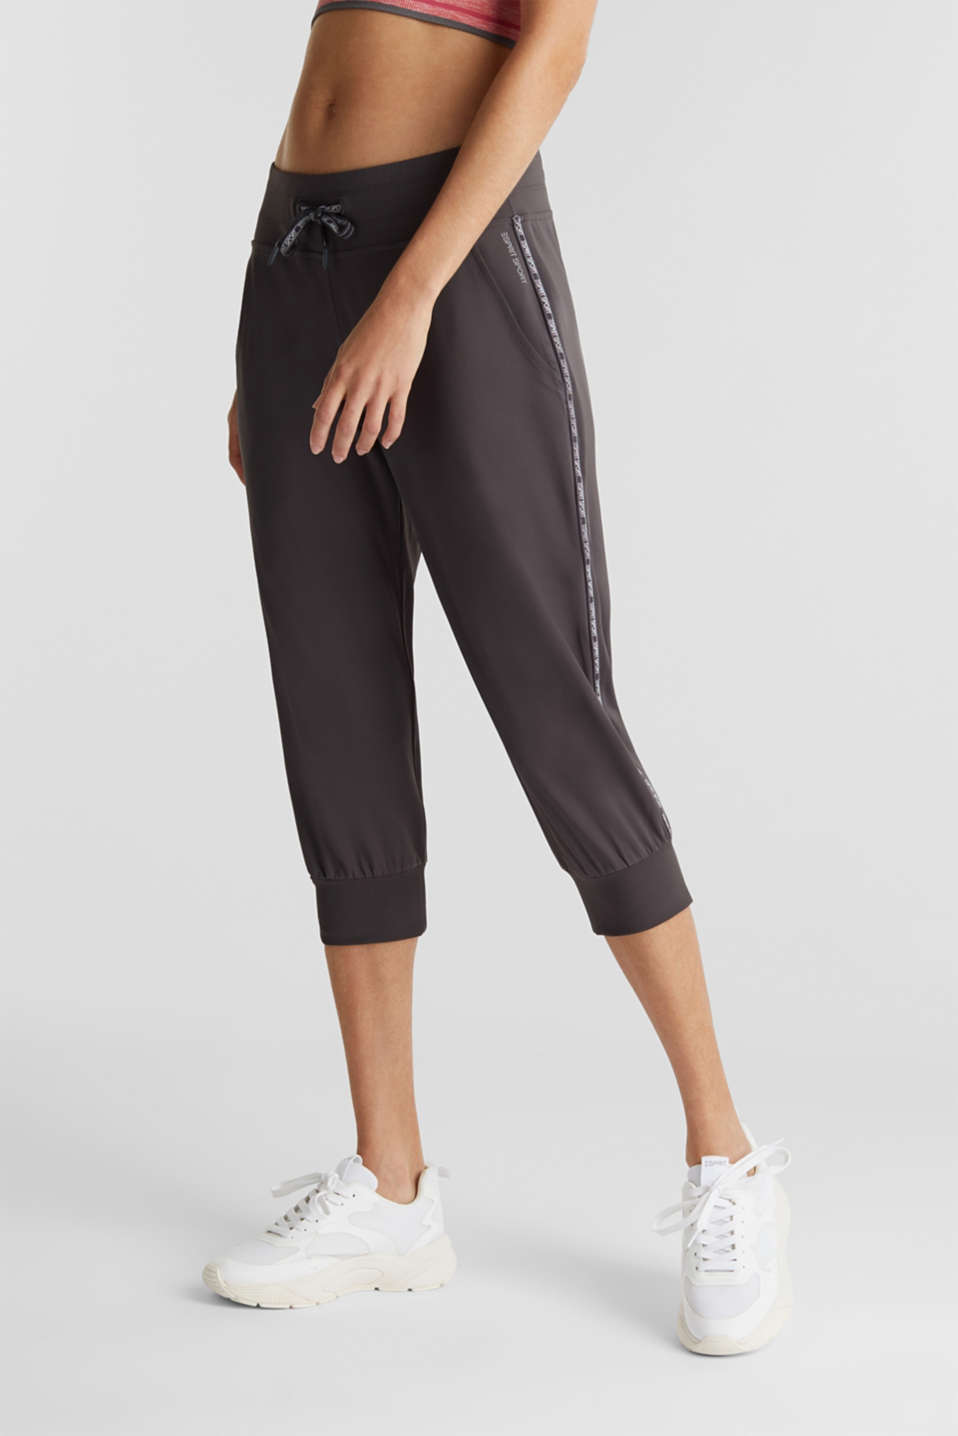 Esprit - Capri trousers with striped tape, E-DRY